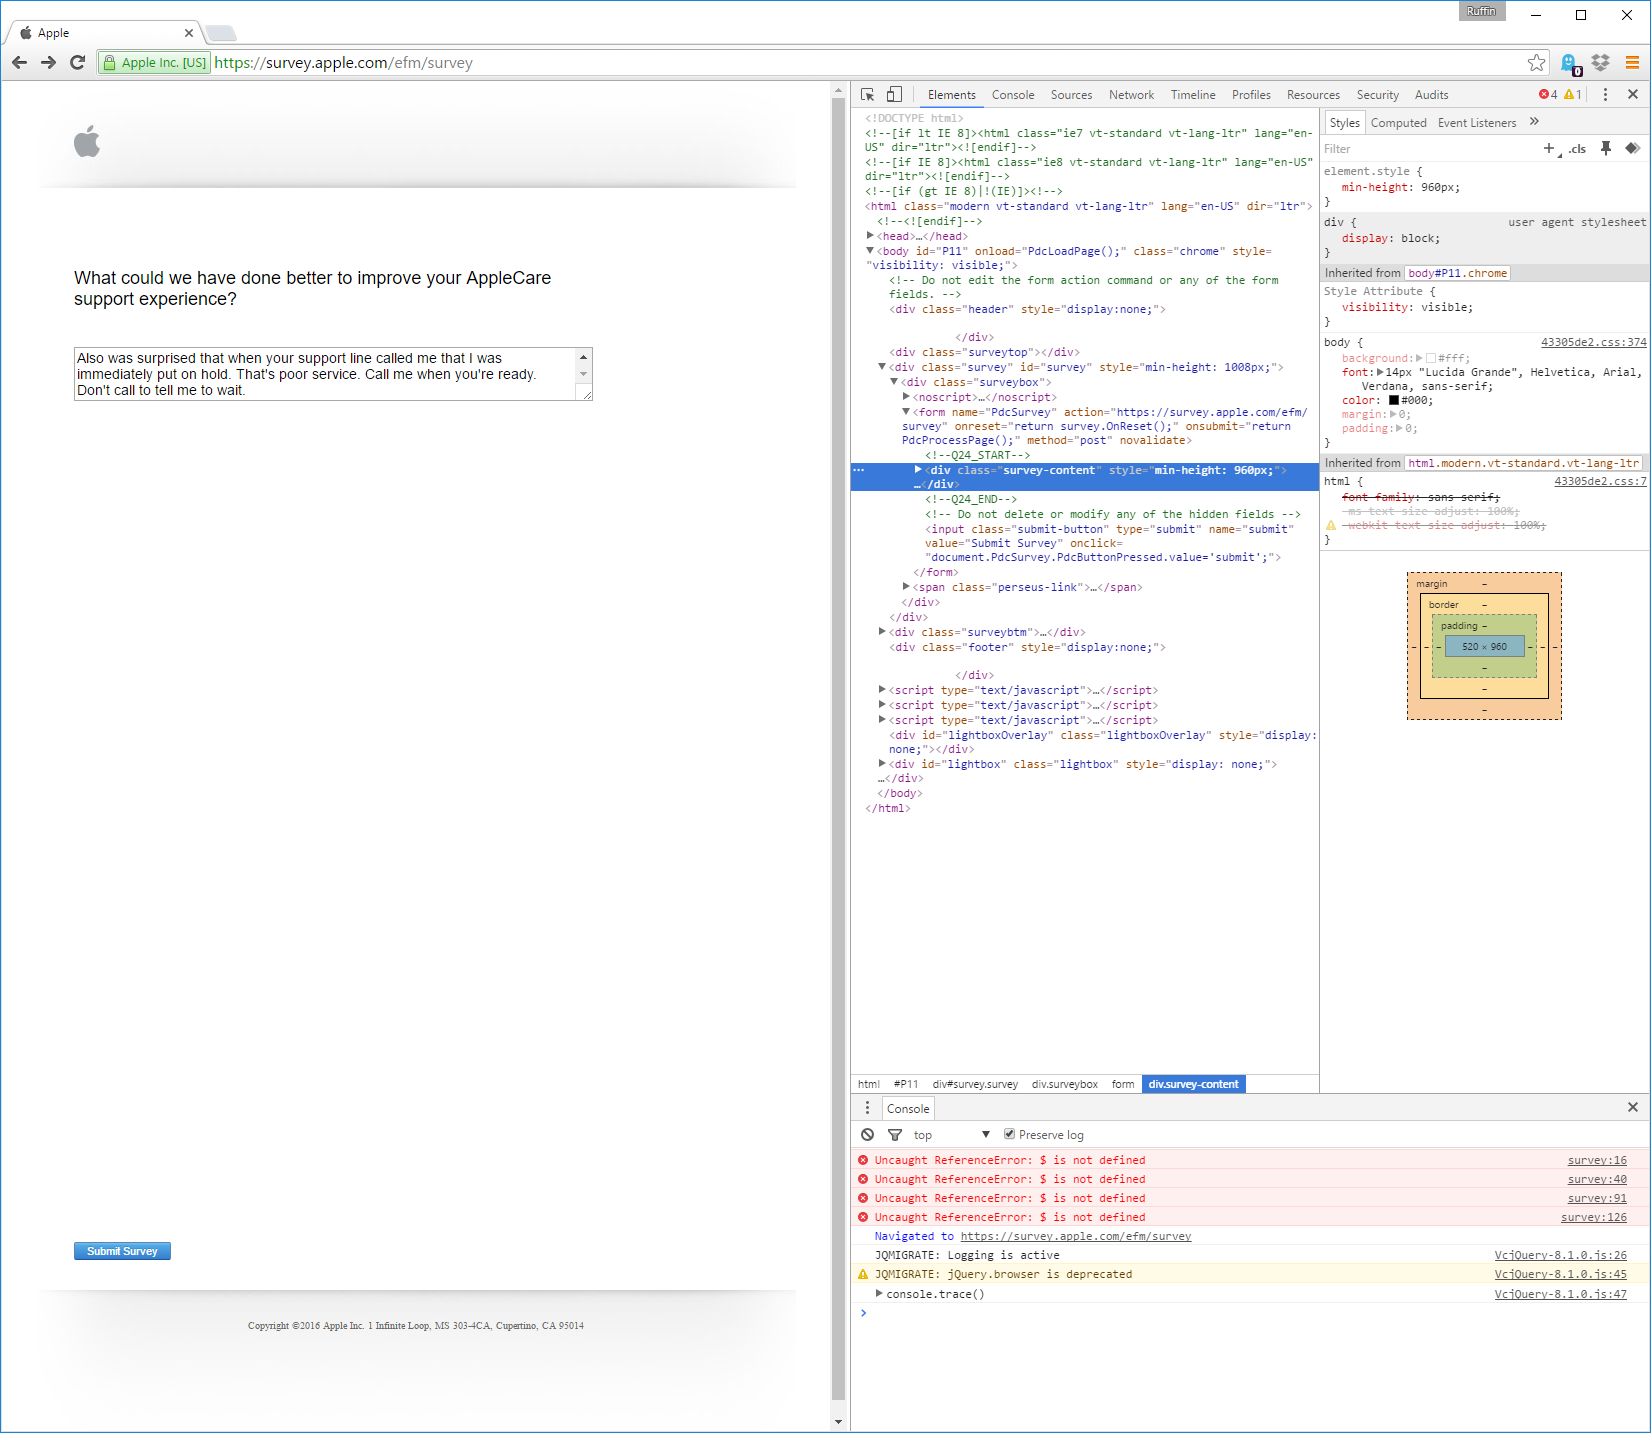 web inspector of Apple survey page